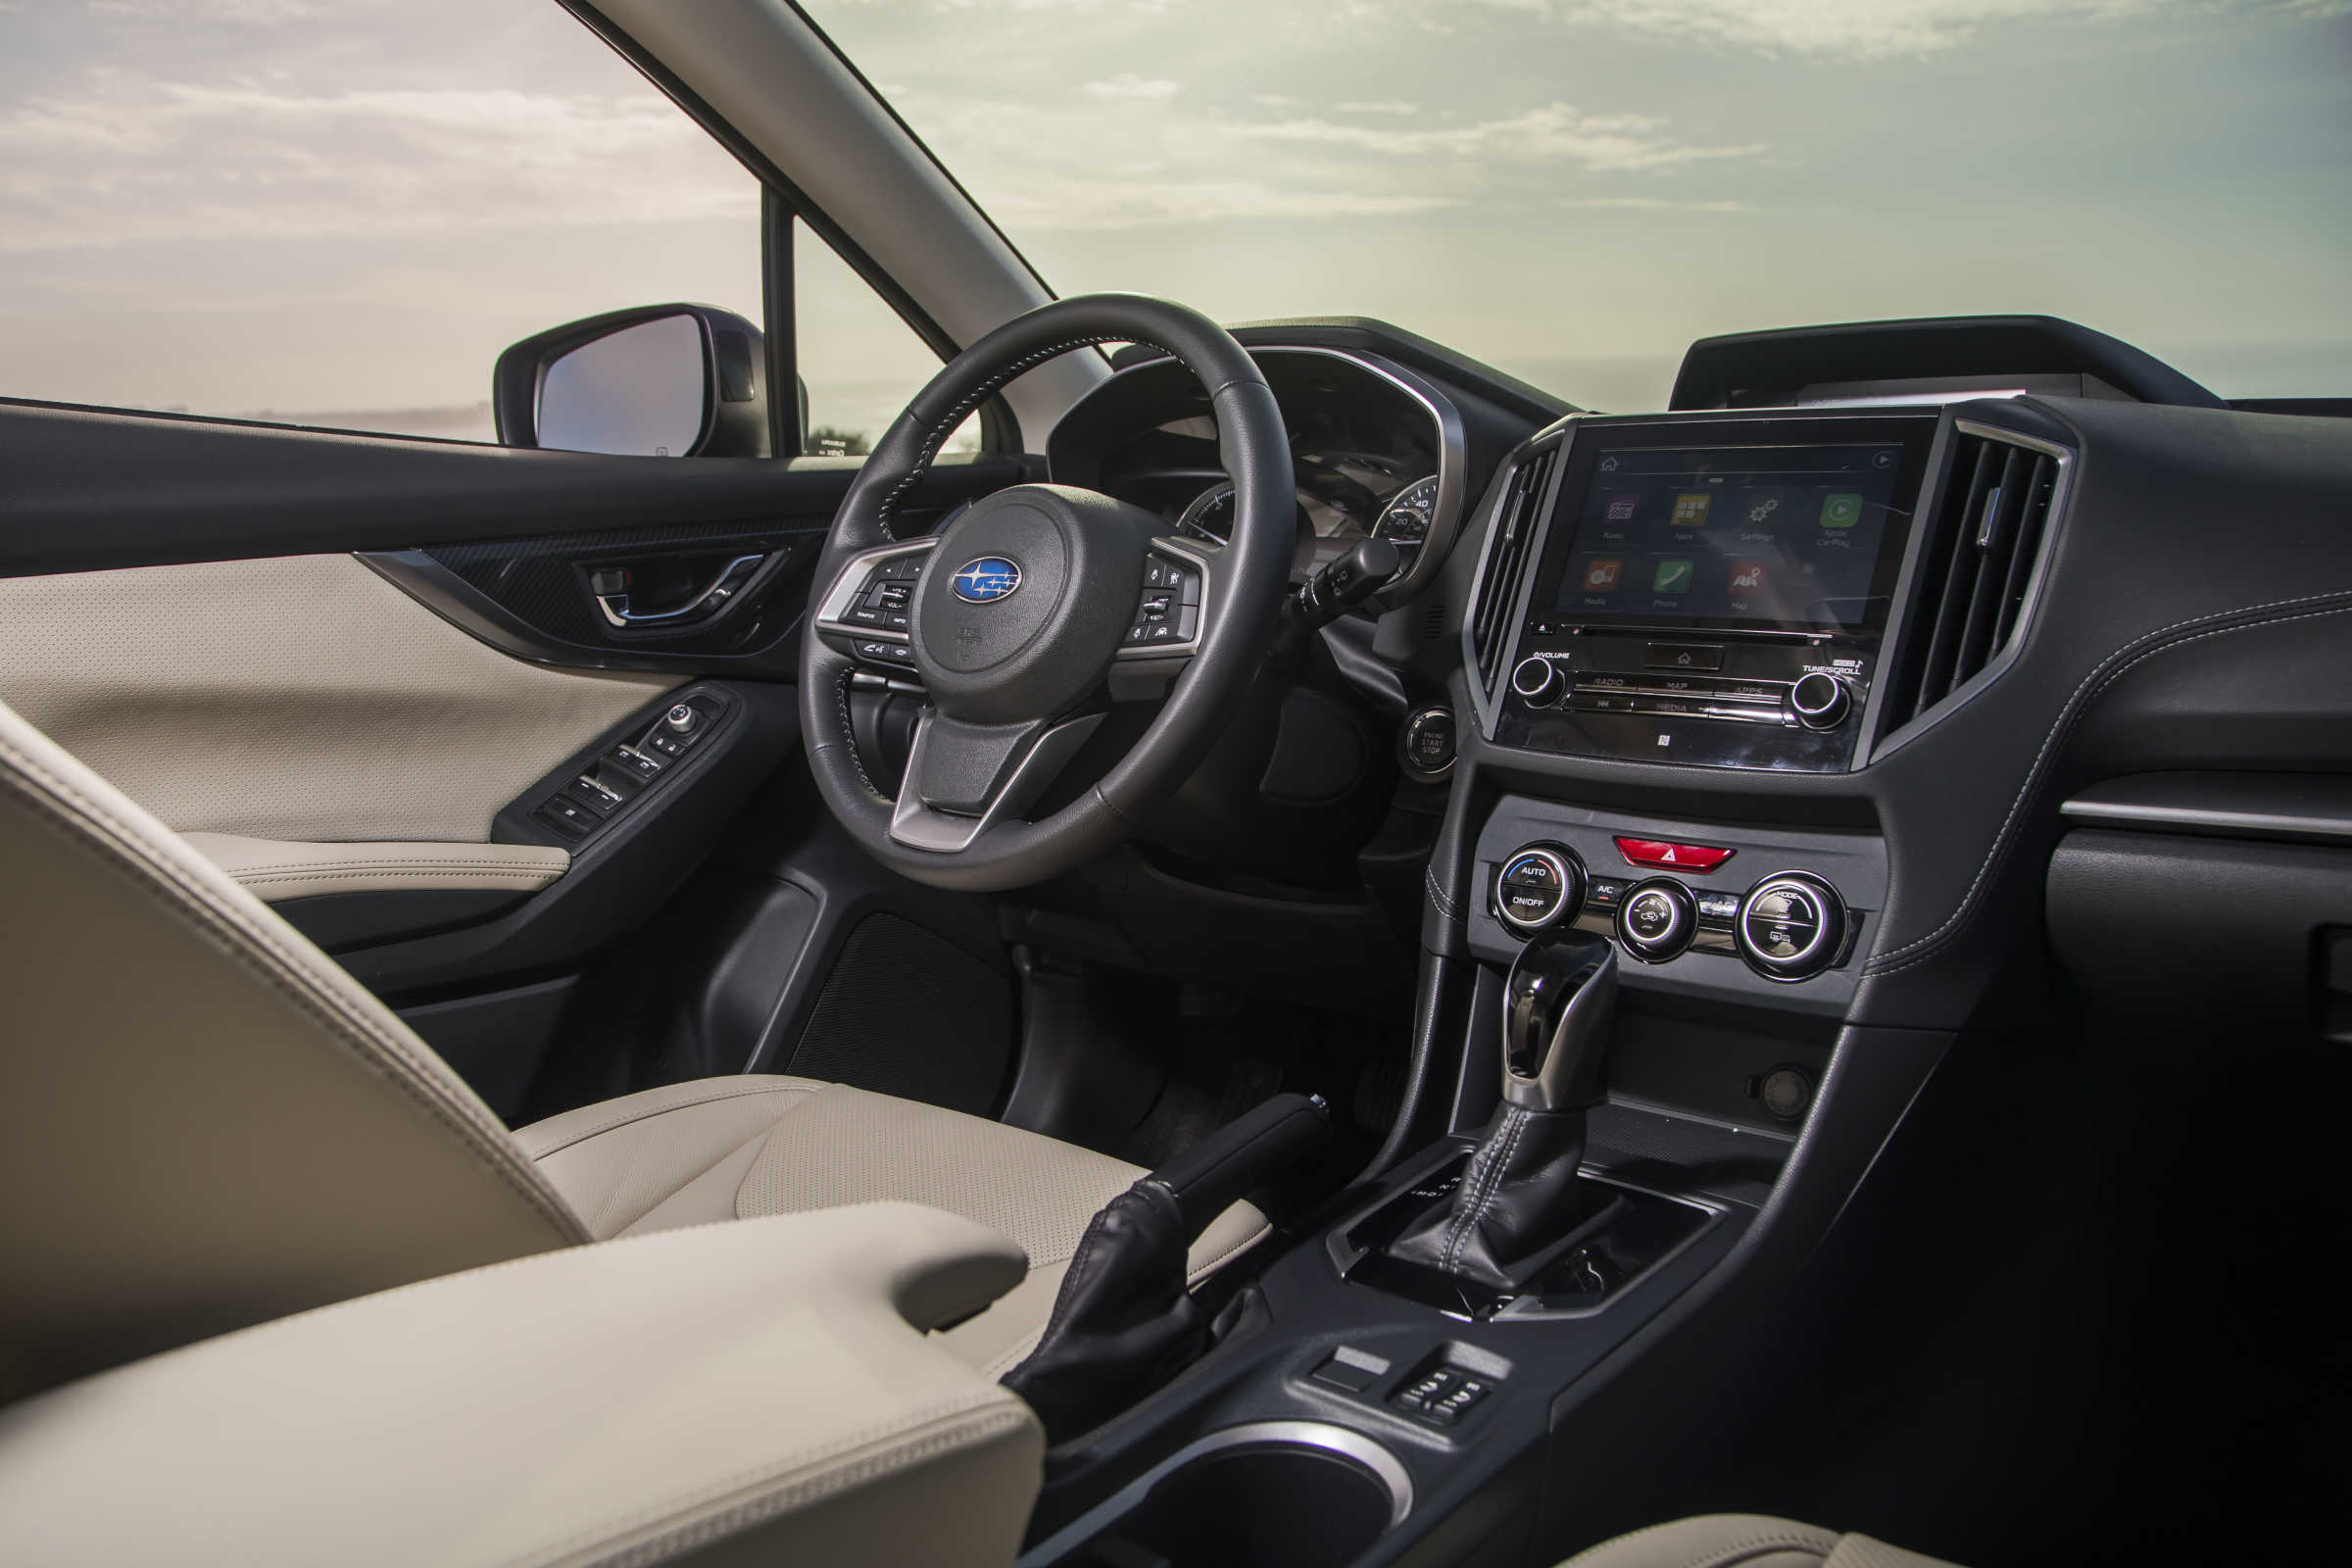 The 2017 Subaru Impreza offers a fairly comfy cabin for driver and passenger, though the new infotainment system could be stubborn.